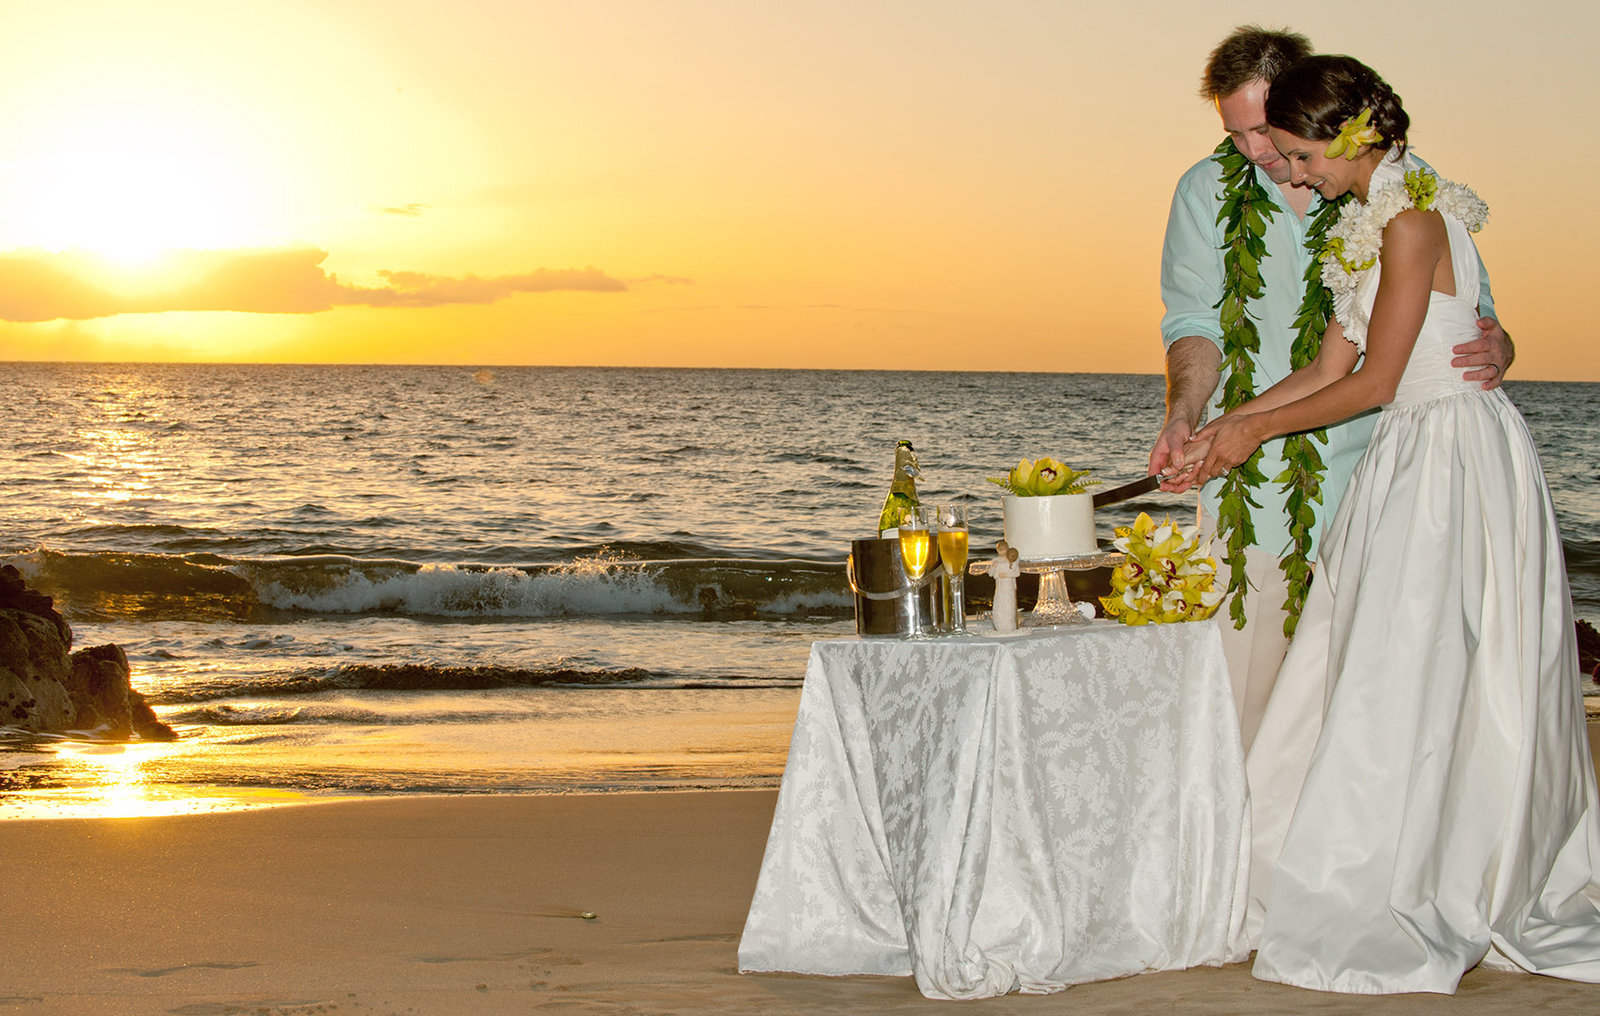 Wedding photographers on Maui | Maui wedding photography